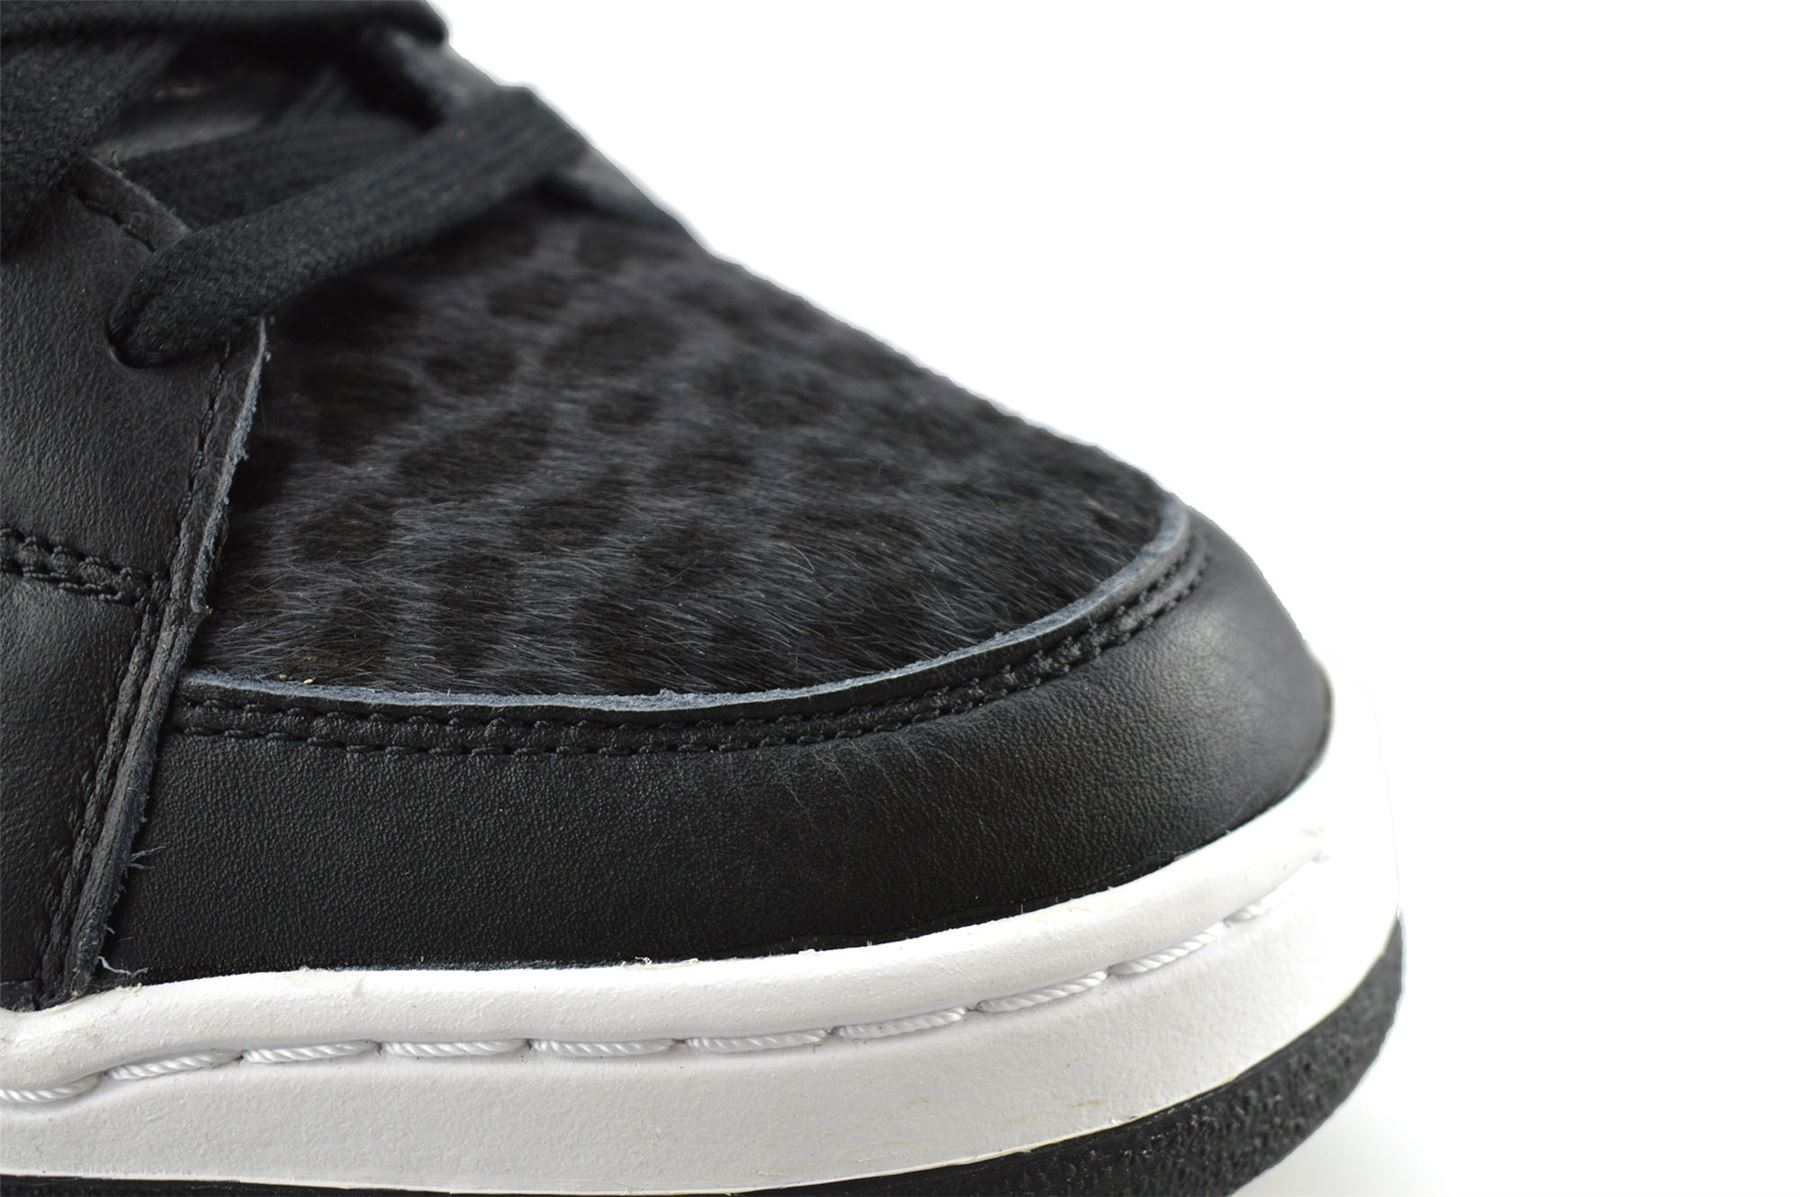 8925cb15a Mens Puma Slipstream Leather Hi Tops Basketball Trainers Ankle Boots ...